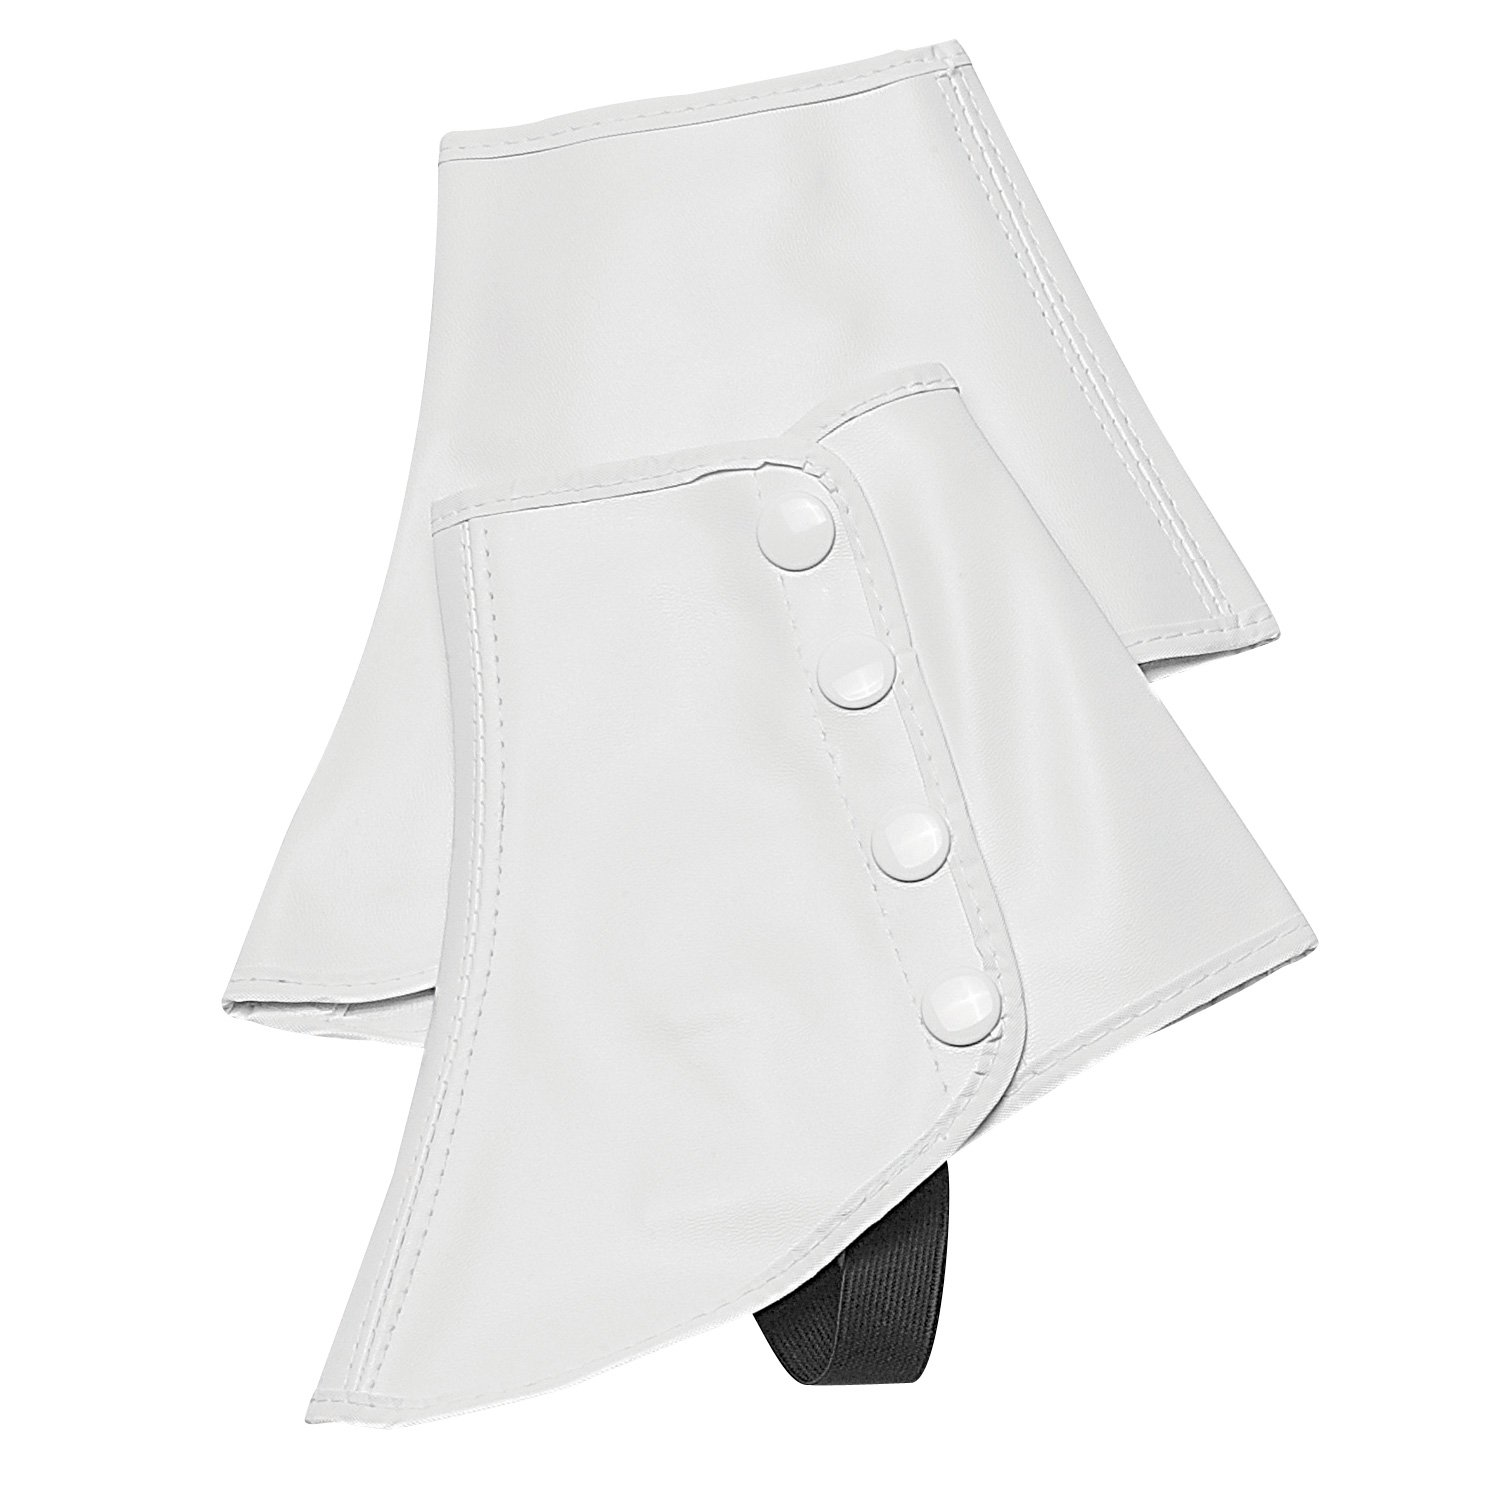 Edwardian Men's Accessories Snap Spats (White Large) by Directors Showcase (DSI) $13.95 AT vintagedancer.com